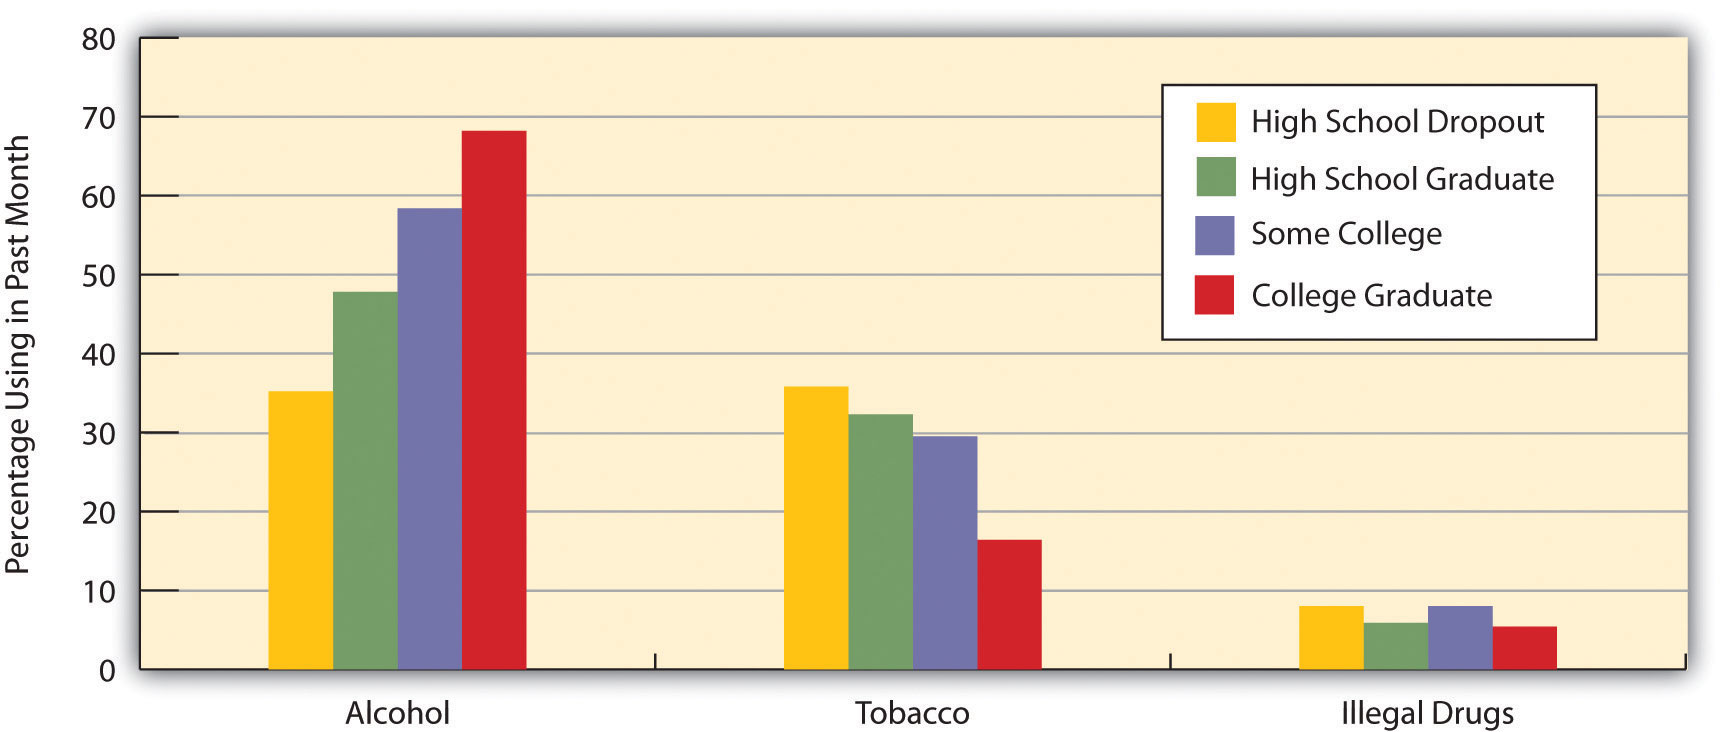 Education and Prevalence of Alcohol, Tobacco, and Illegal Drug Use, Ages 26 and Older